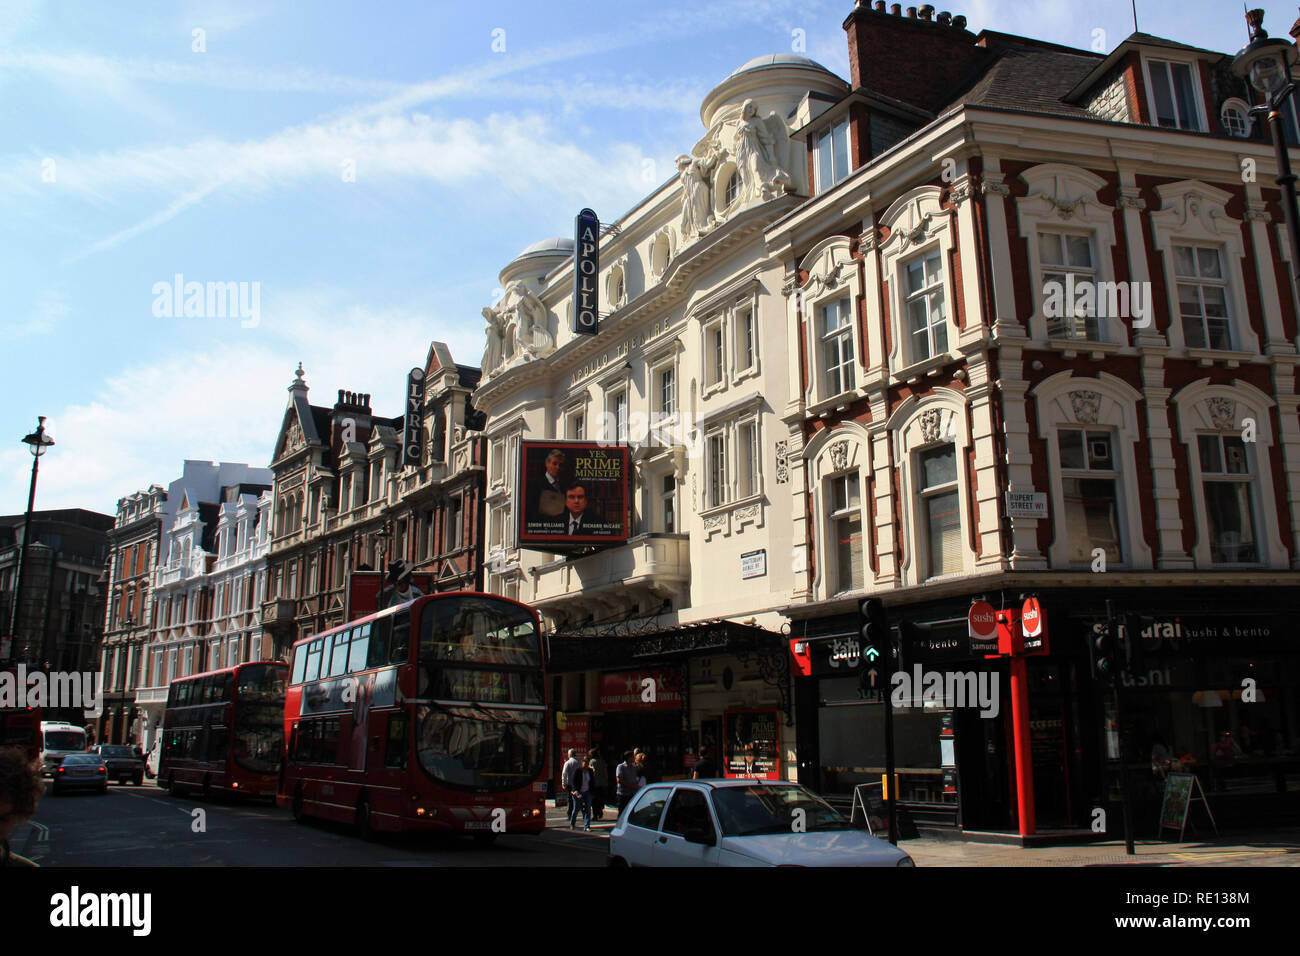 Exterior view of the Lyric Theatre and Apollo Theatre at Shaftesbury Ave, Soho, London, United Kingdom - Stock Image